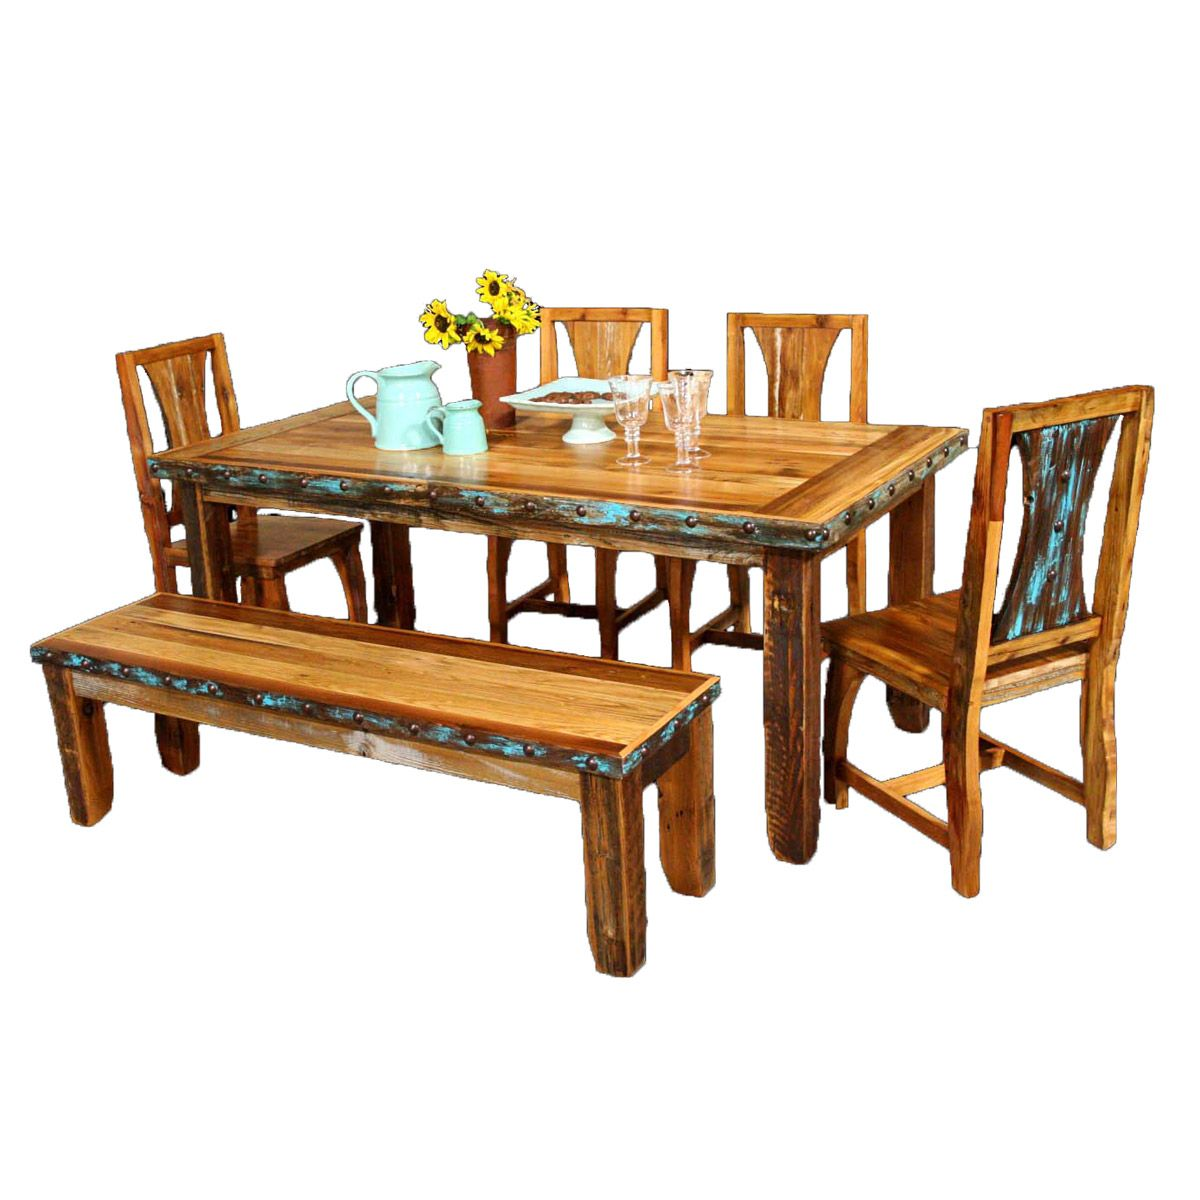 Barnwood Azul Table & Chairs with Bench and Nailheads - 6 pcs